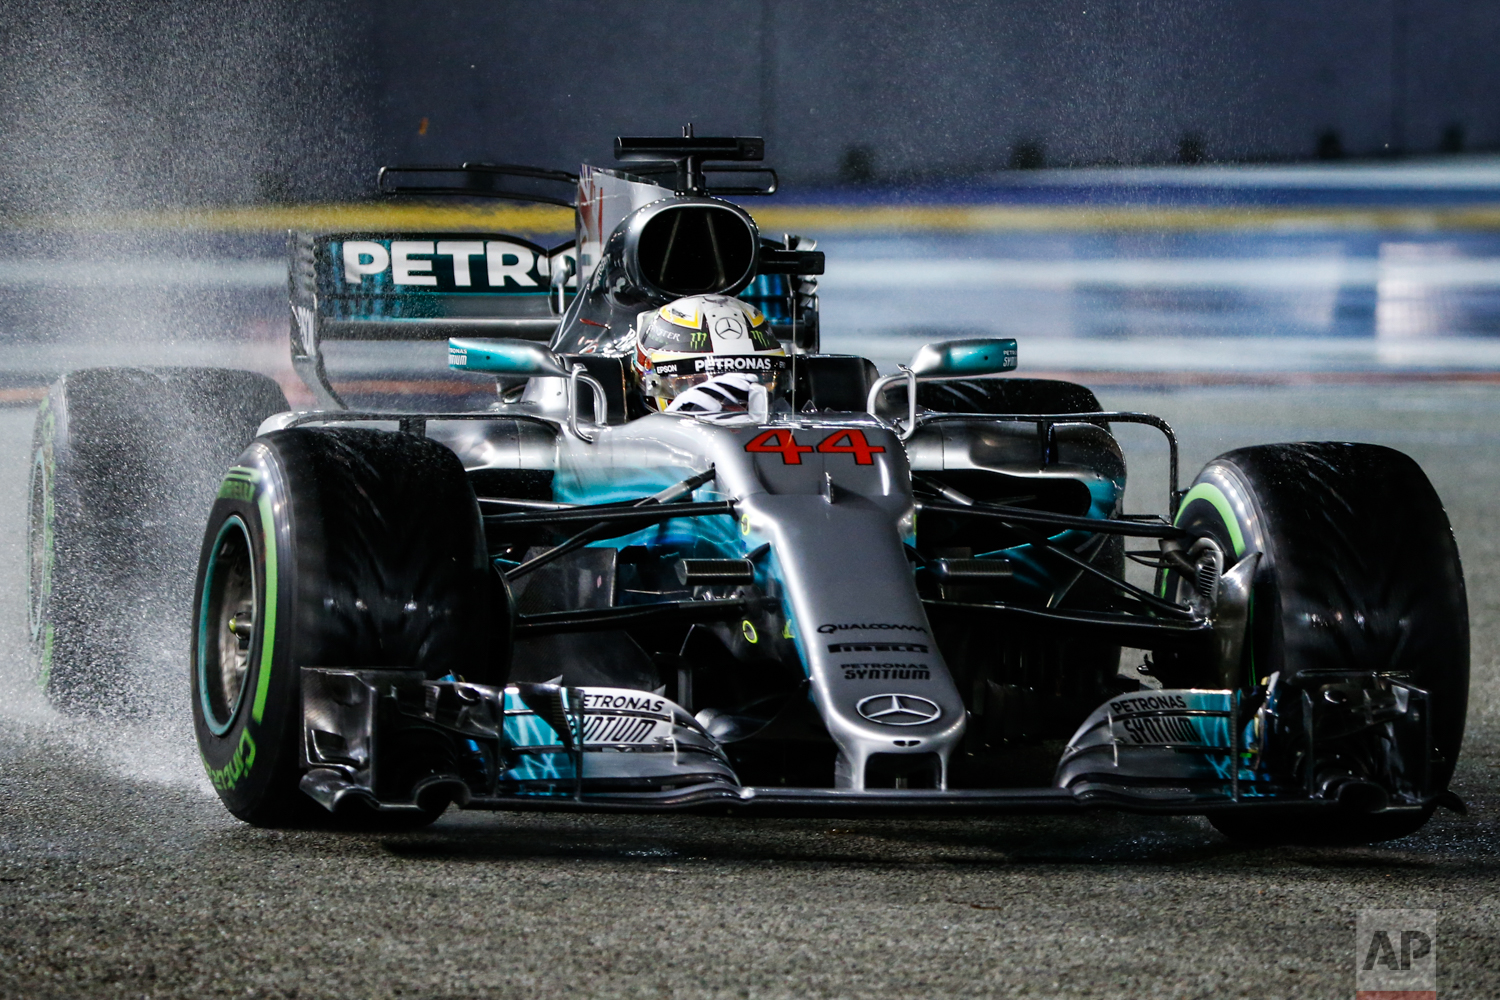 Mercedes driver Lewis Hamilton of Britain steers his car during the Singapore Formula One Grand Prix on the Marina Bay City Circuit Singapore, Sunday, Sept. 17, 2017. (AP Photo/Yong Teck Lim)